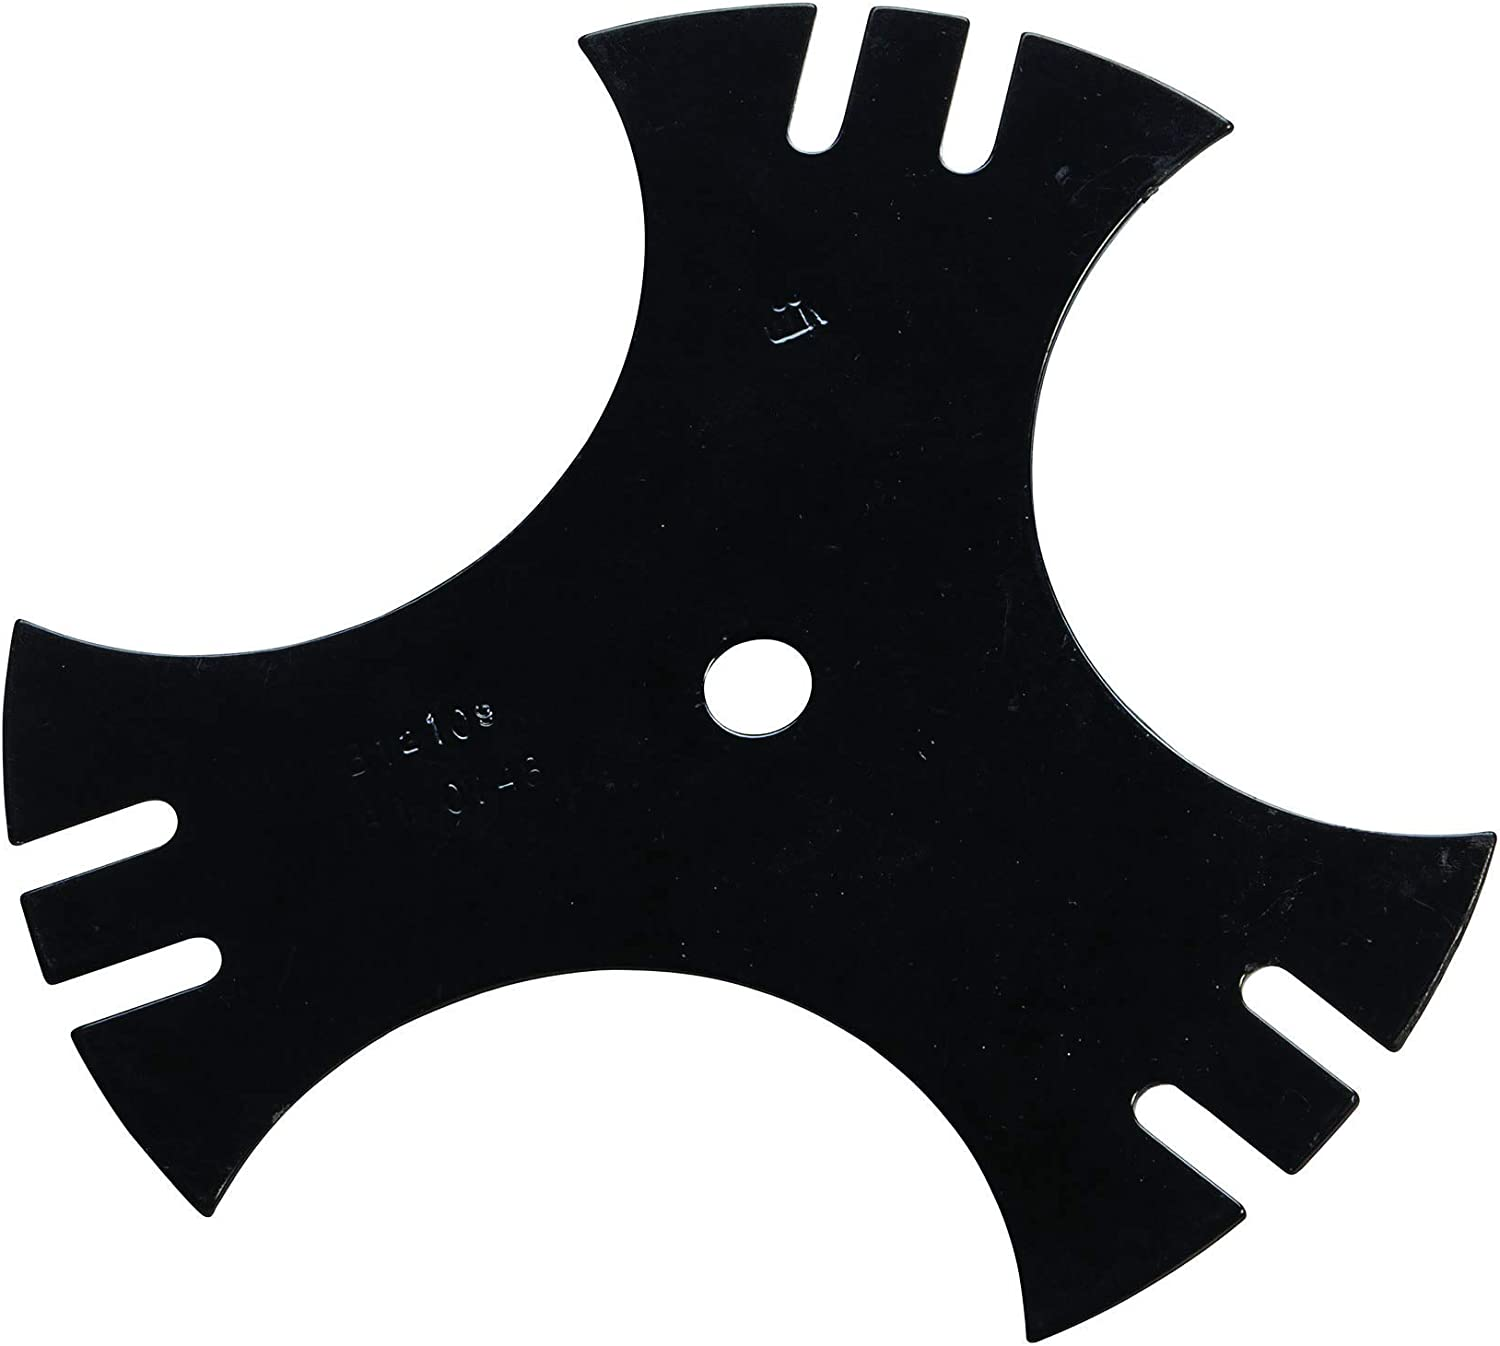 Oregon Edger Blade, Replaces Mtd 781-0748 Part # 40-009